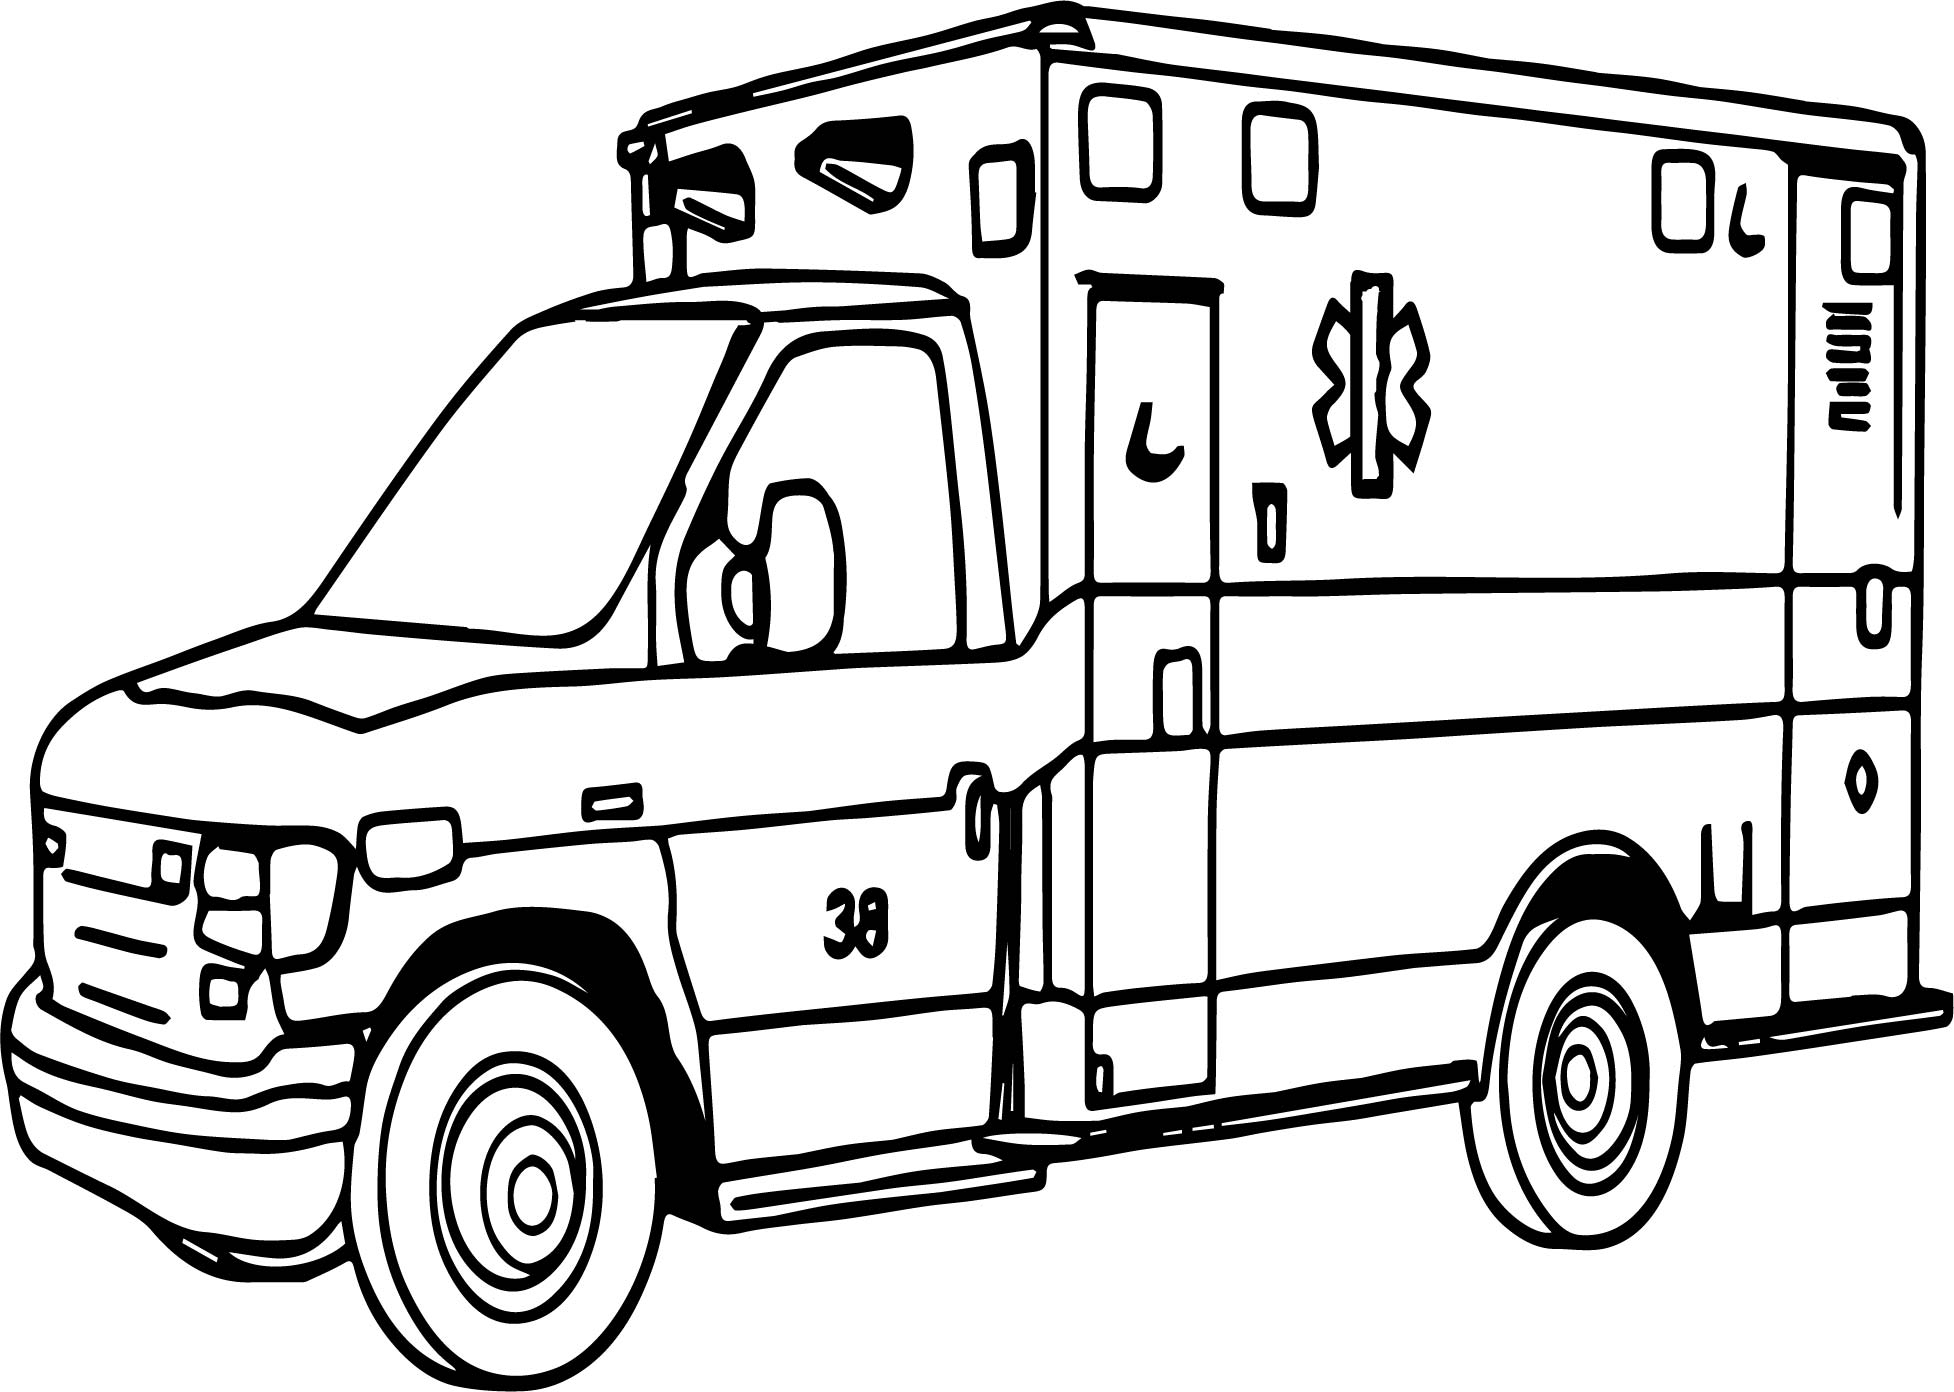 emergency vehicle coloring pages emergency vehicle coloring pages at getcoloringscom coloring emergency vehicle pages